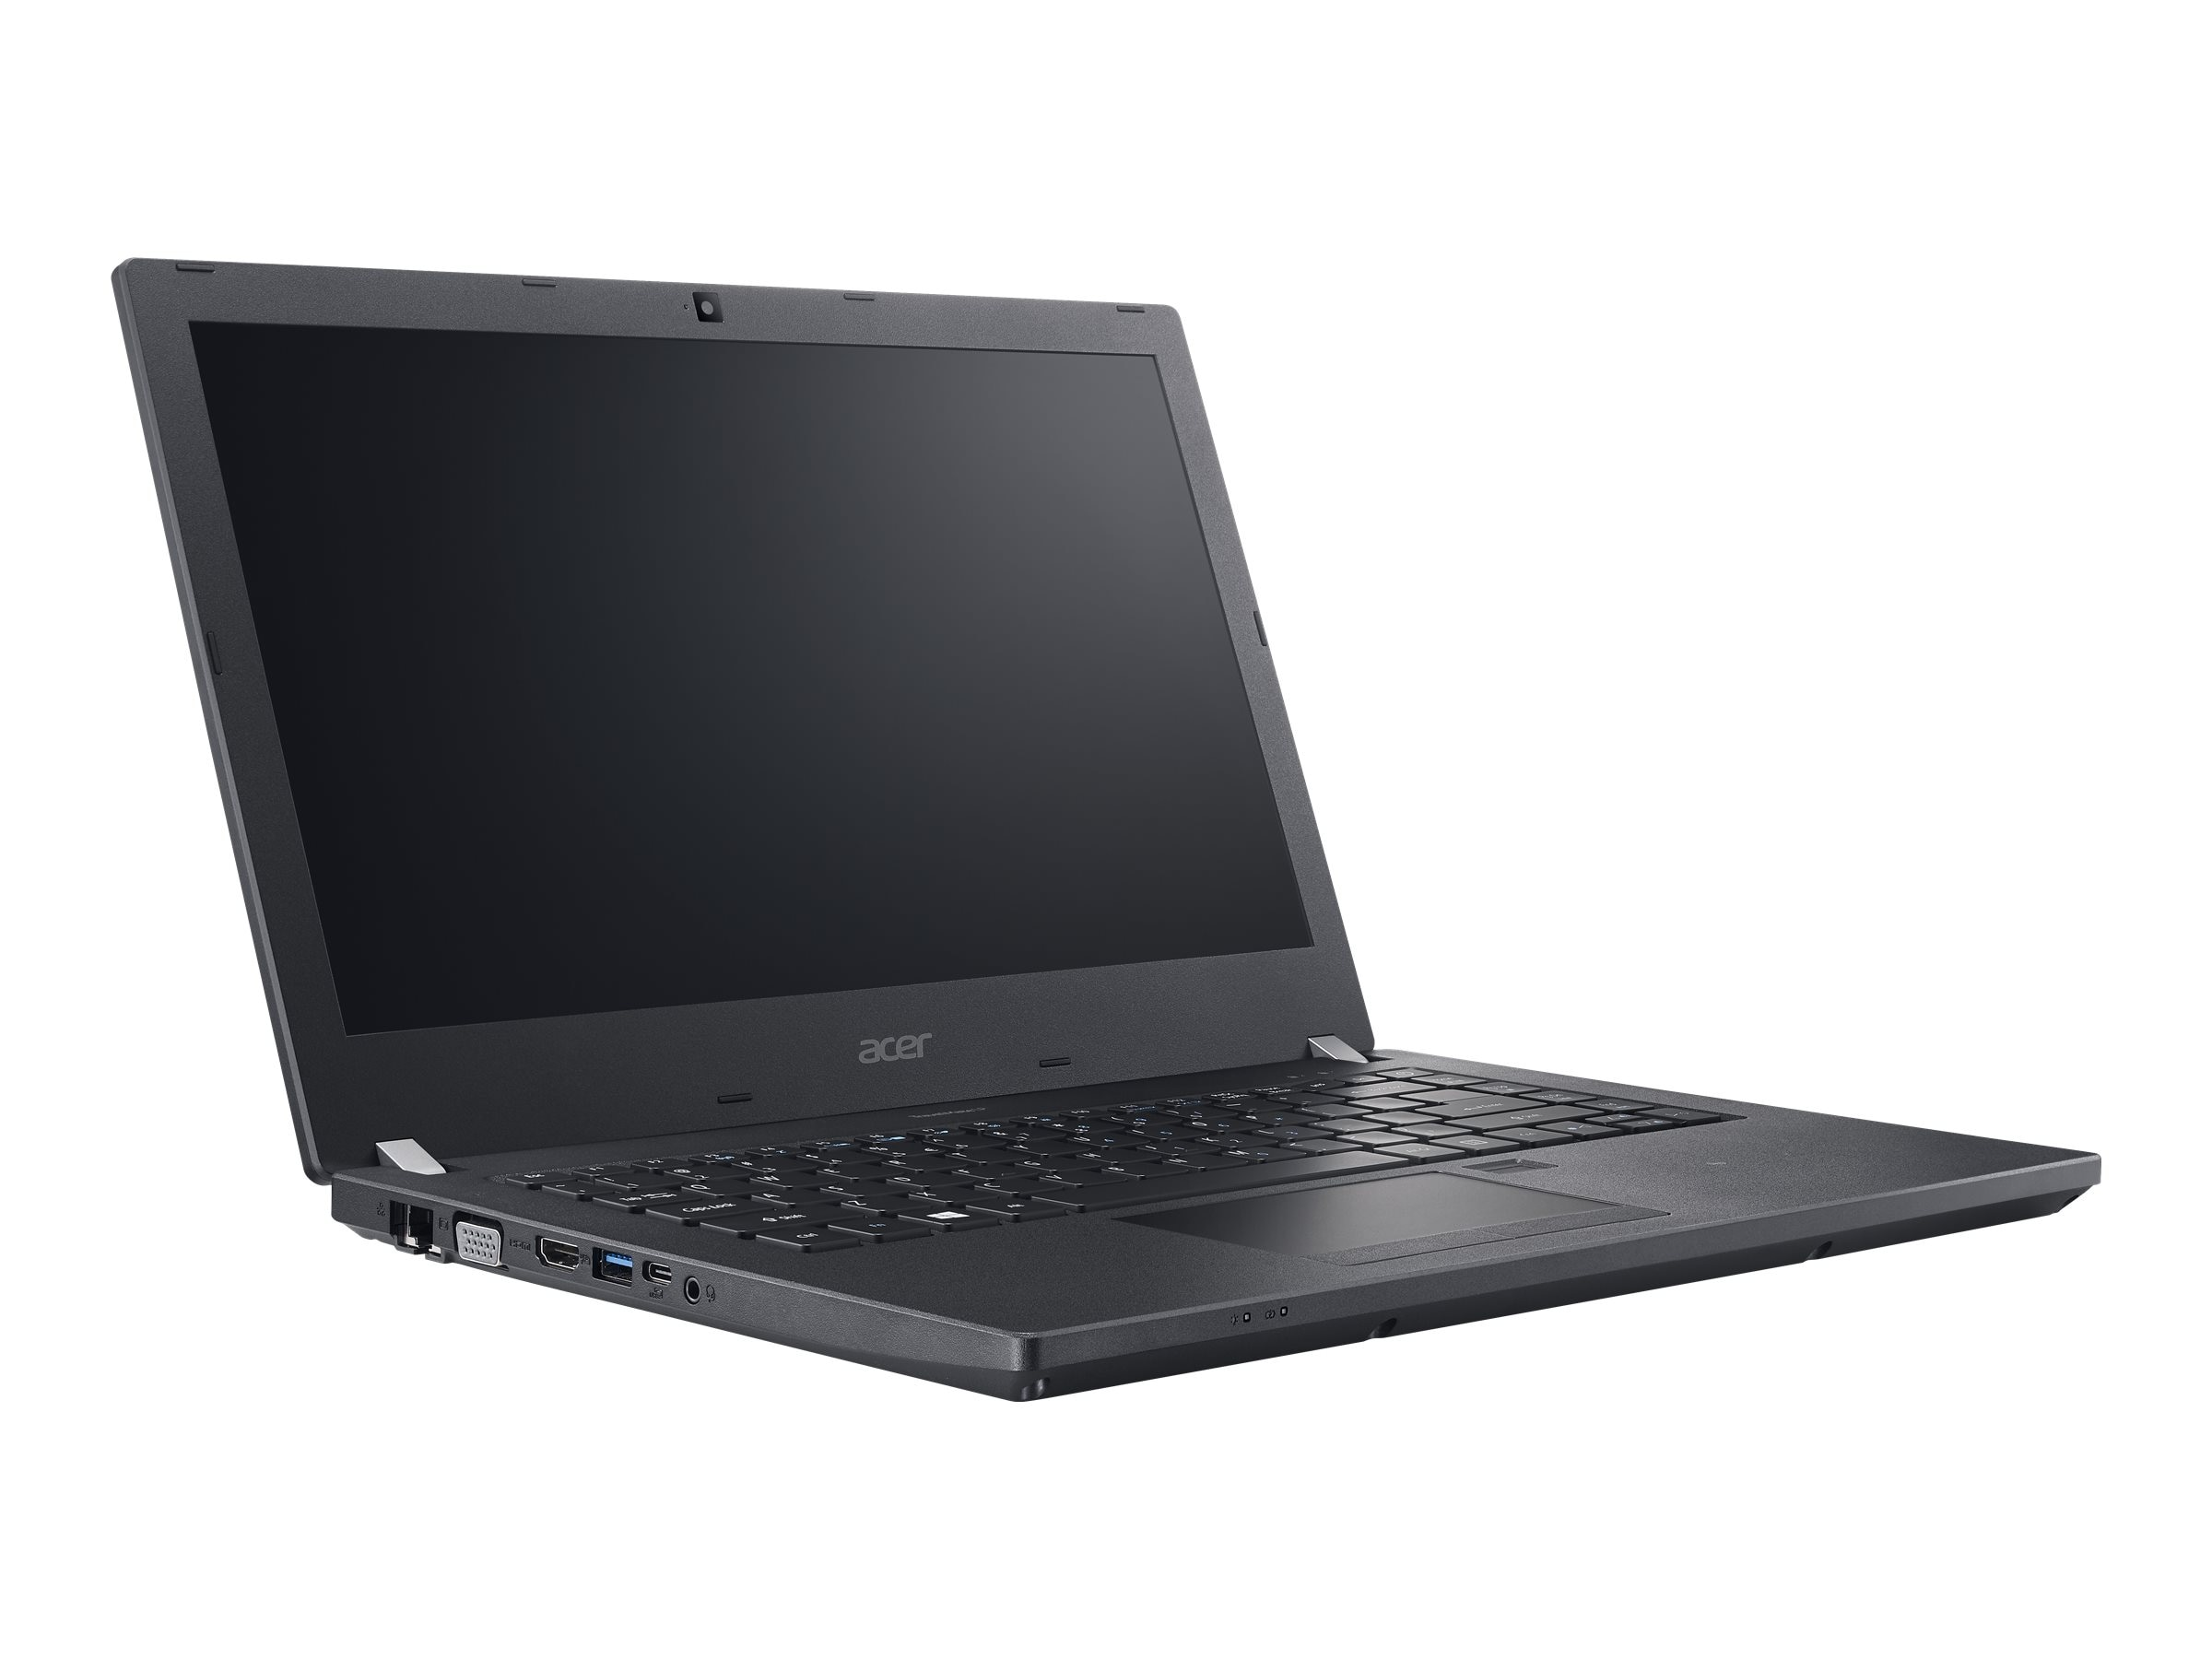 Acer NX.VDKAA.005 Image 3